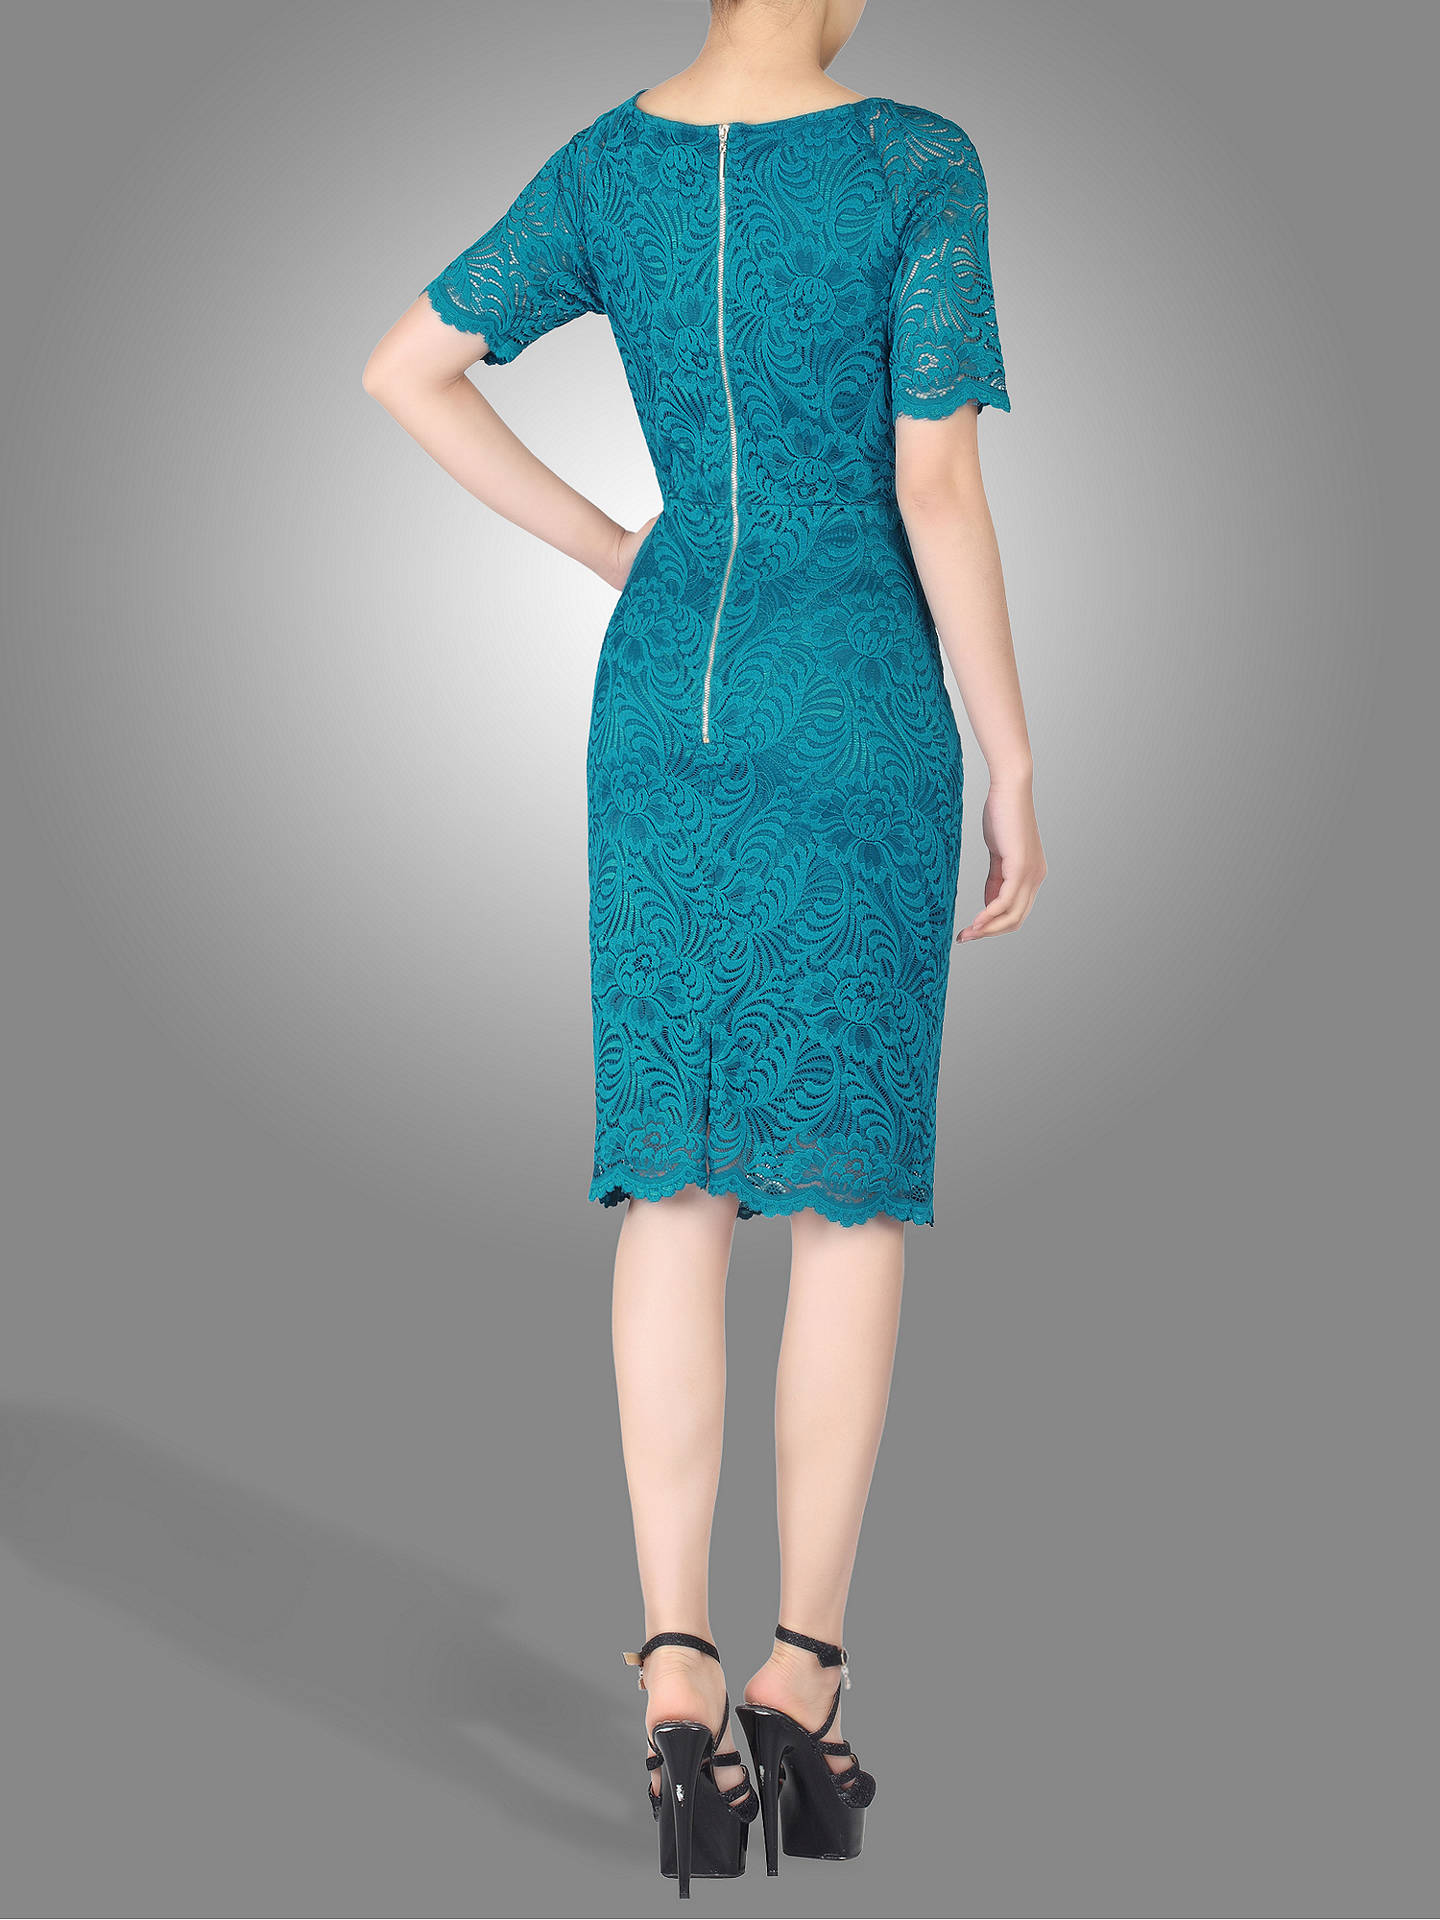 BuyJolie Moi Lace Ruched Shift Dress, Teal, 8 Online at johnlewis.com